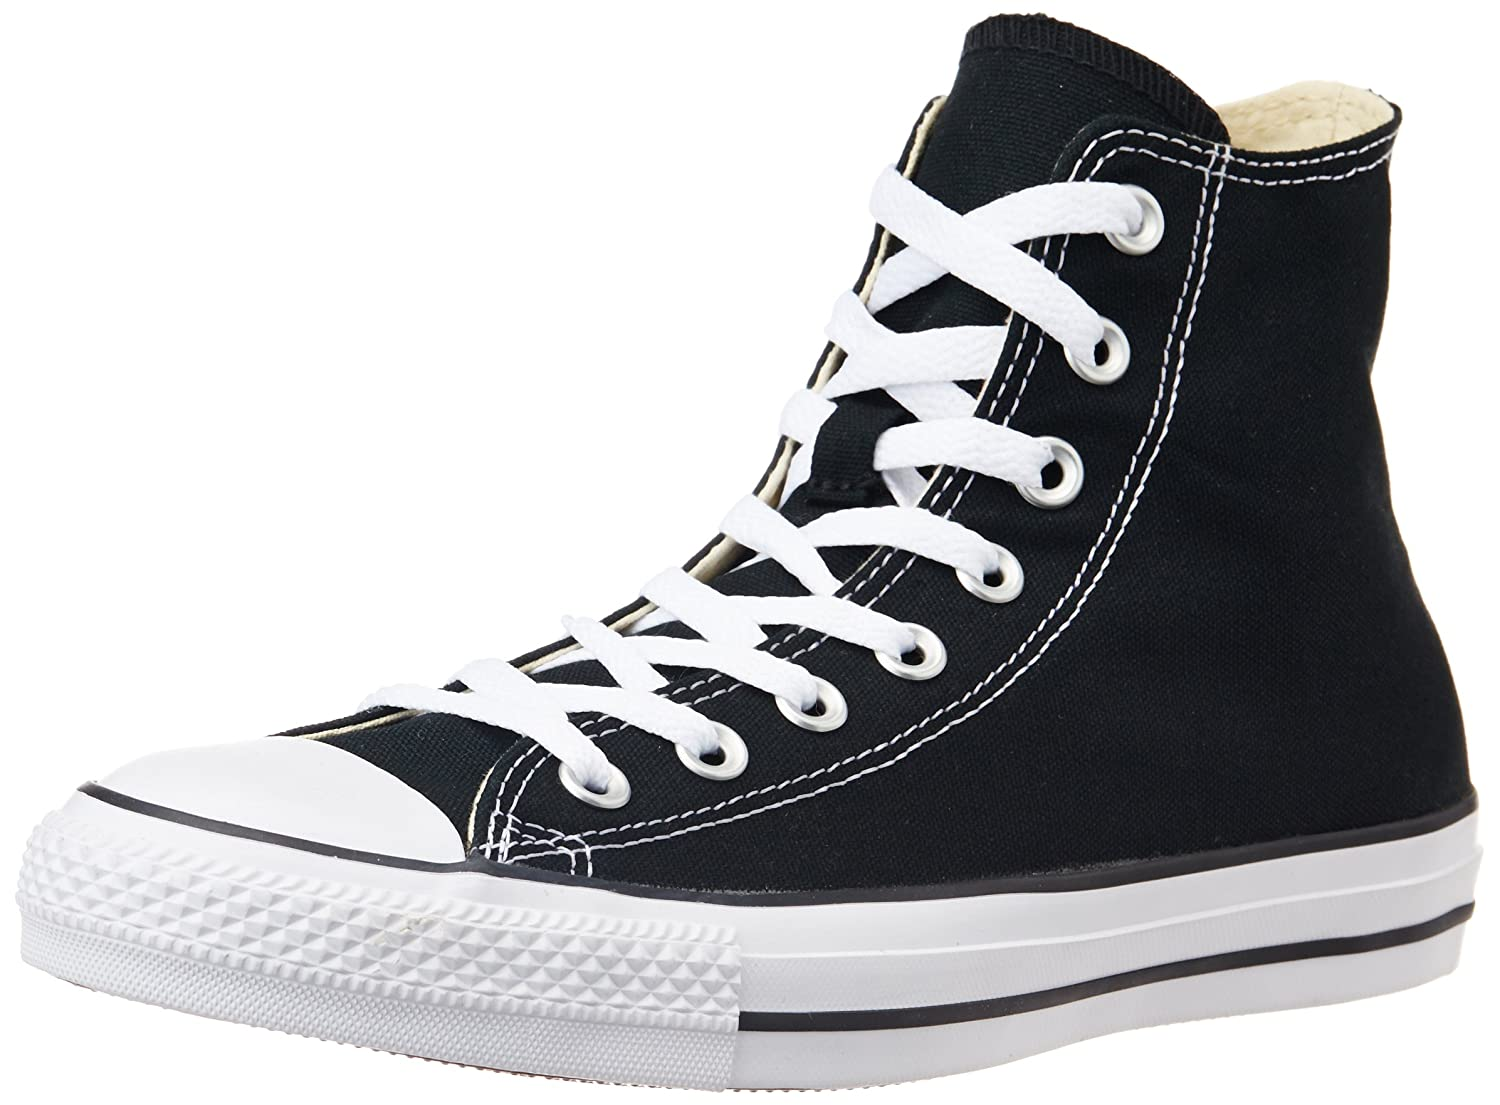 buy womens converse shoes online india